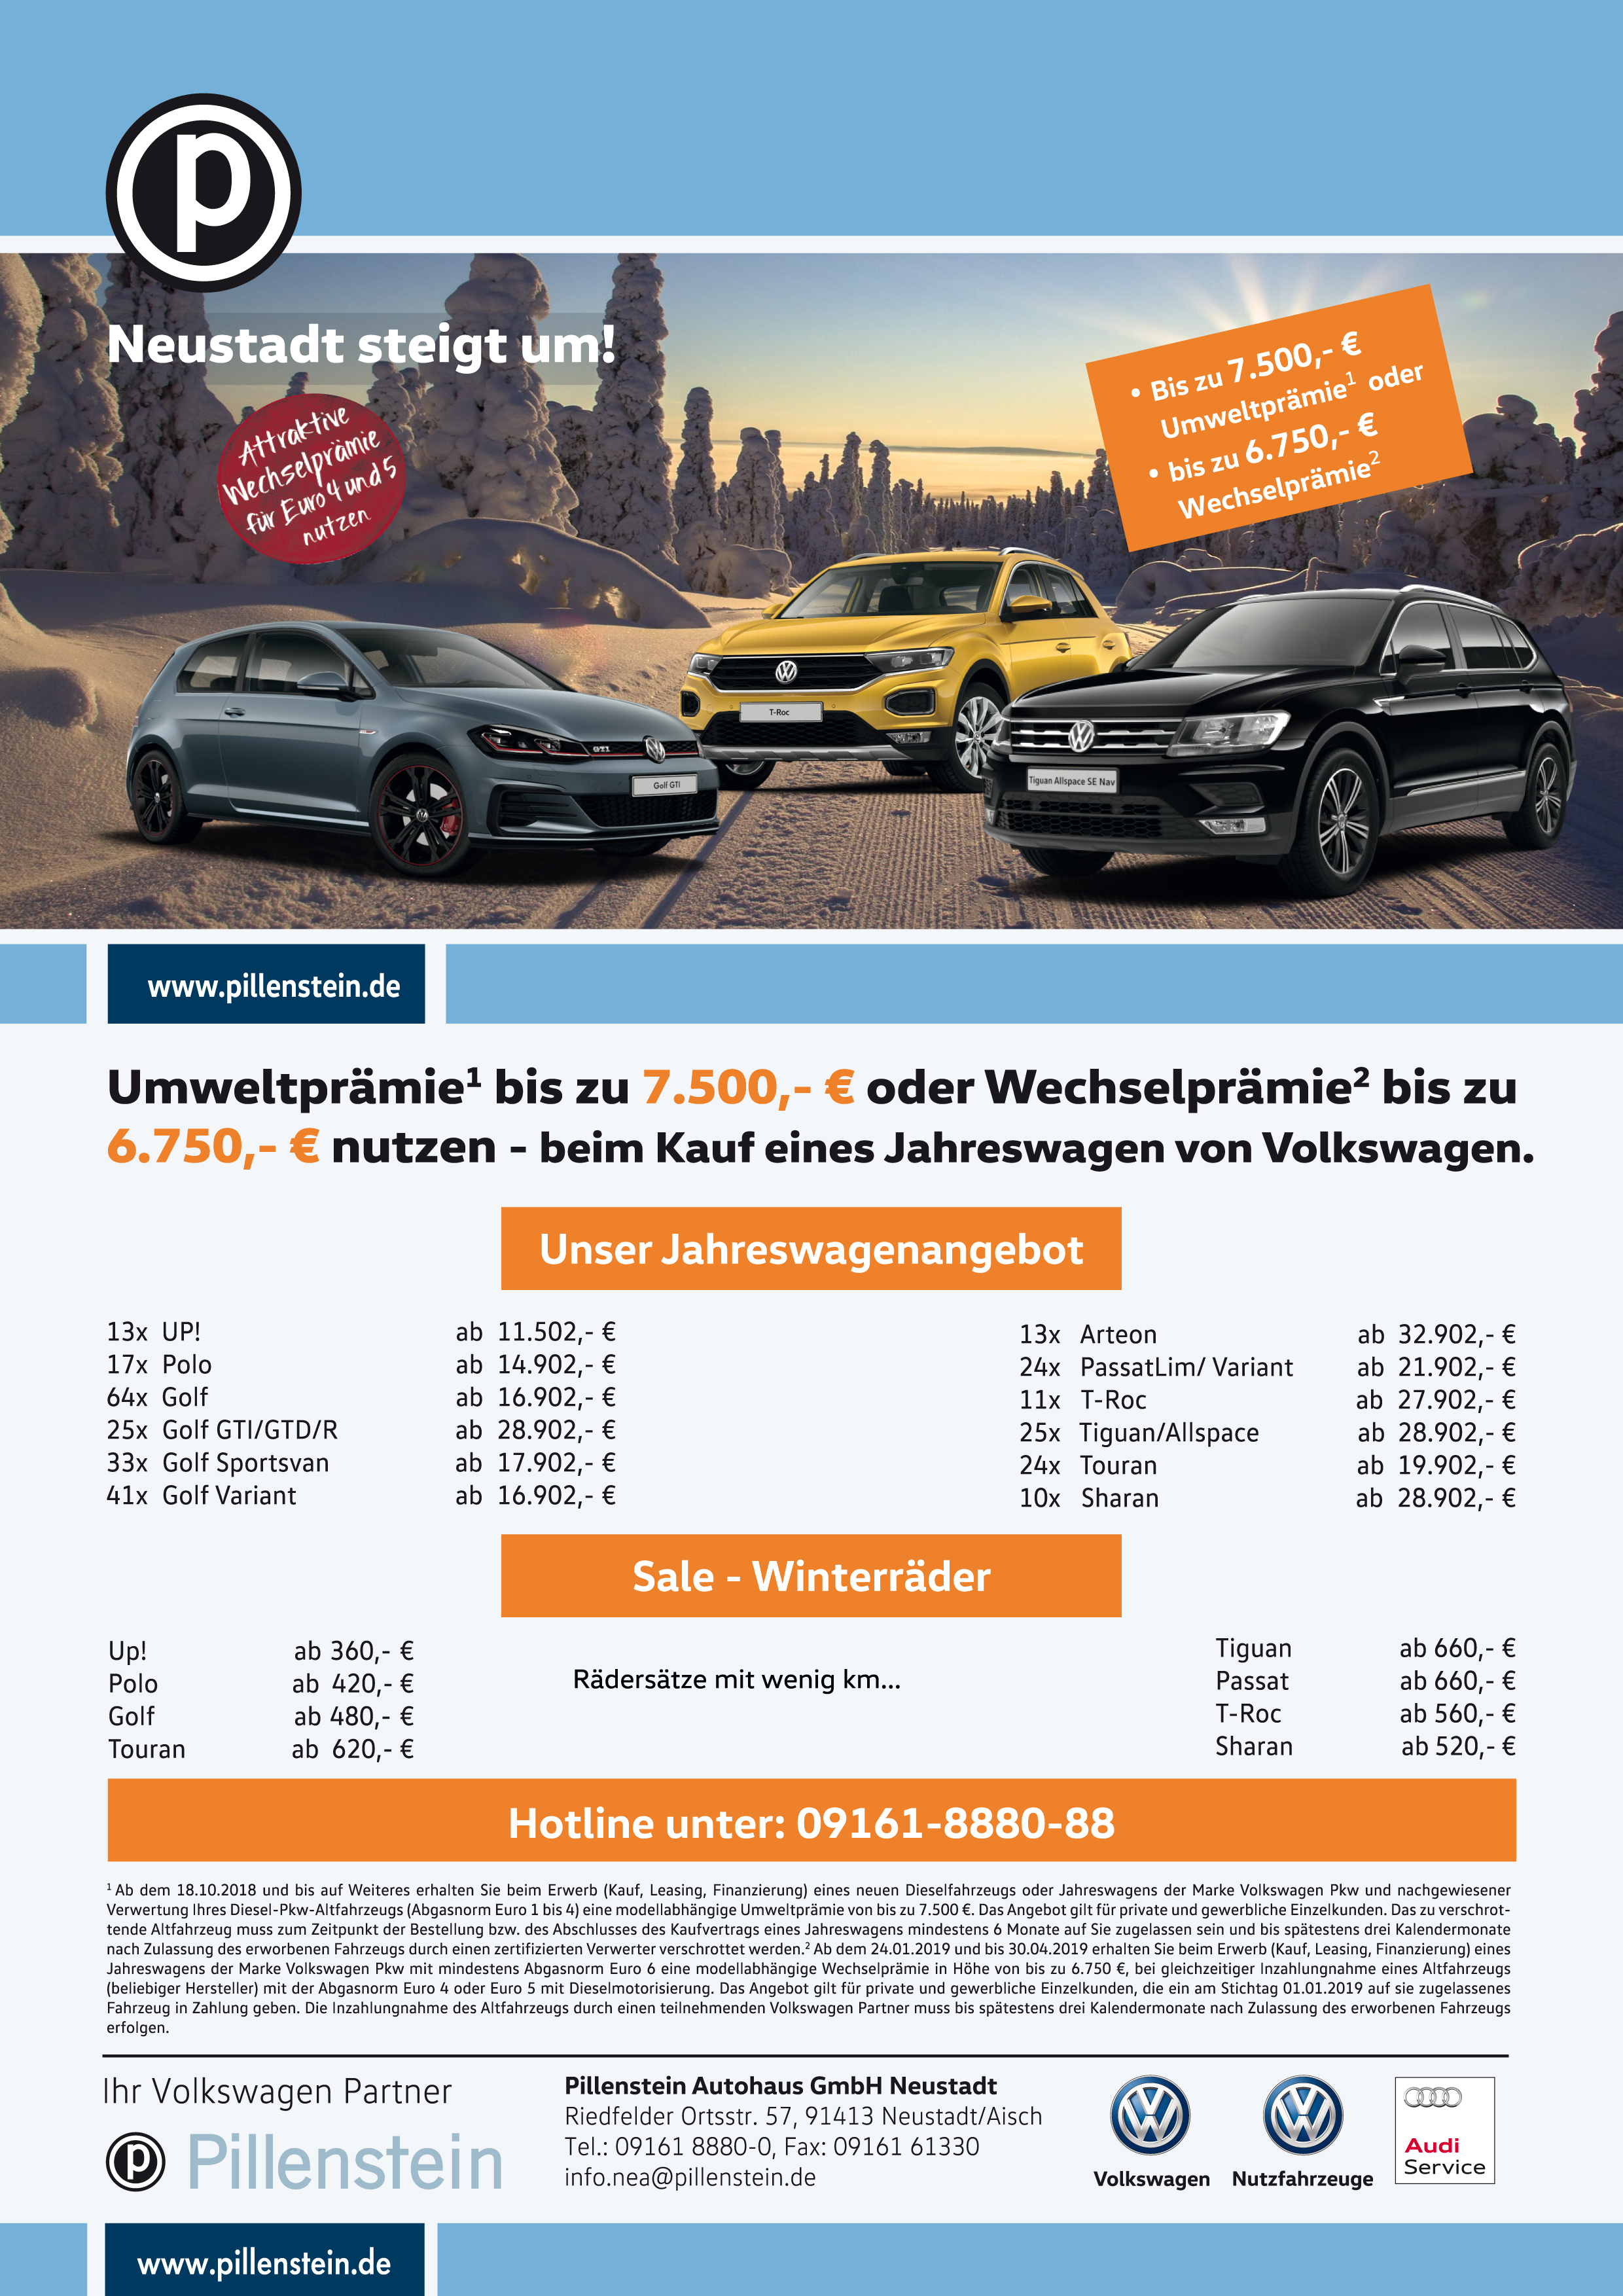 vw neu gebrauchtwagen autohaus pillenstein. Black Bedroom Furniture Sets. Home Design Ideas